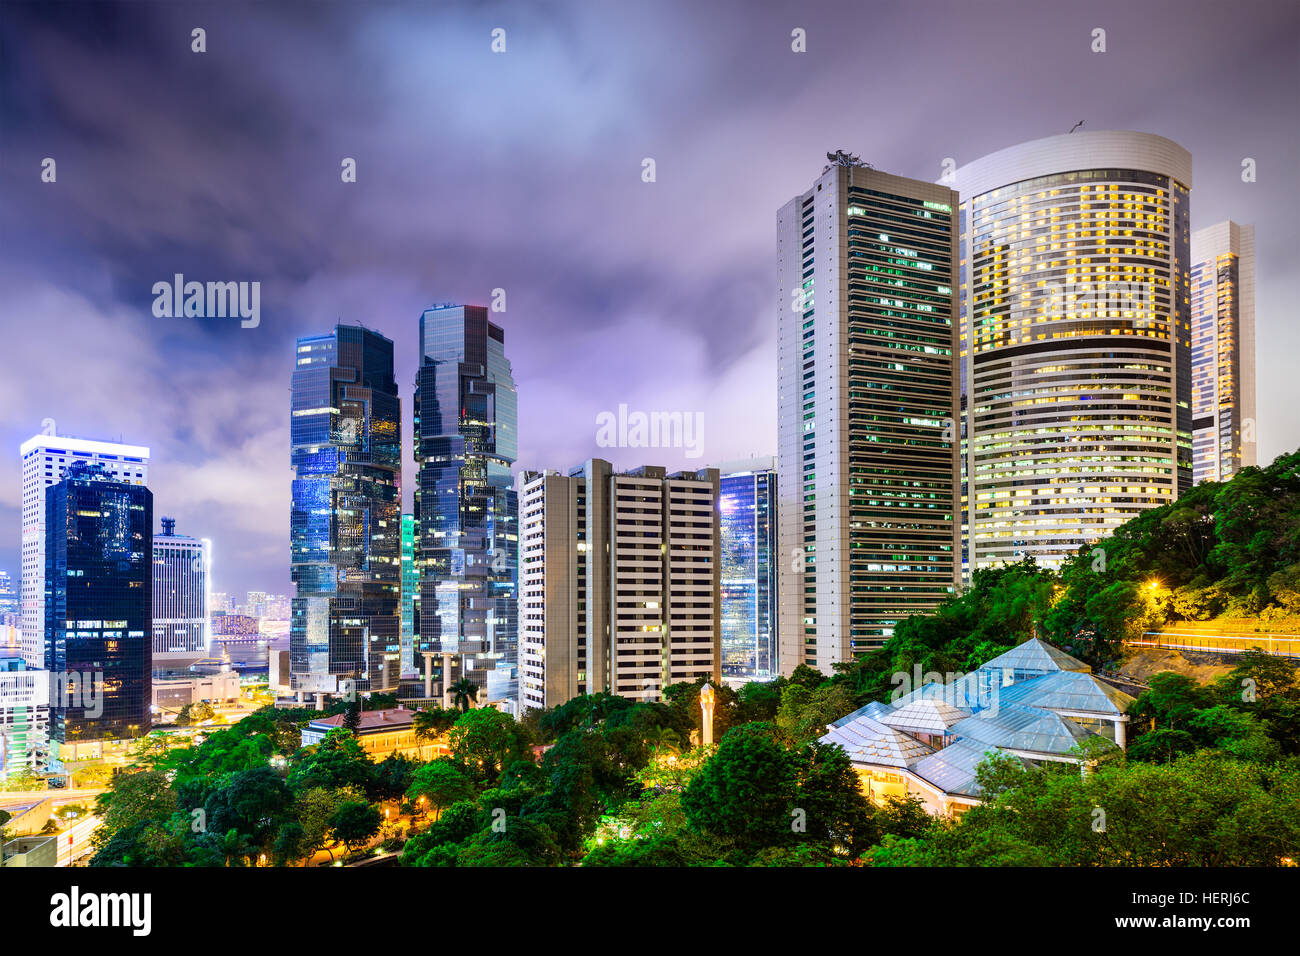 Hong Kong, China Stadtbild aus Hong Kong Park. Stockbild